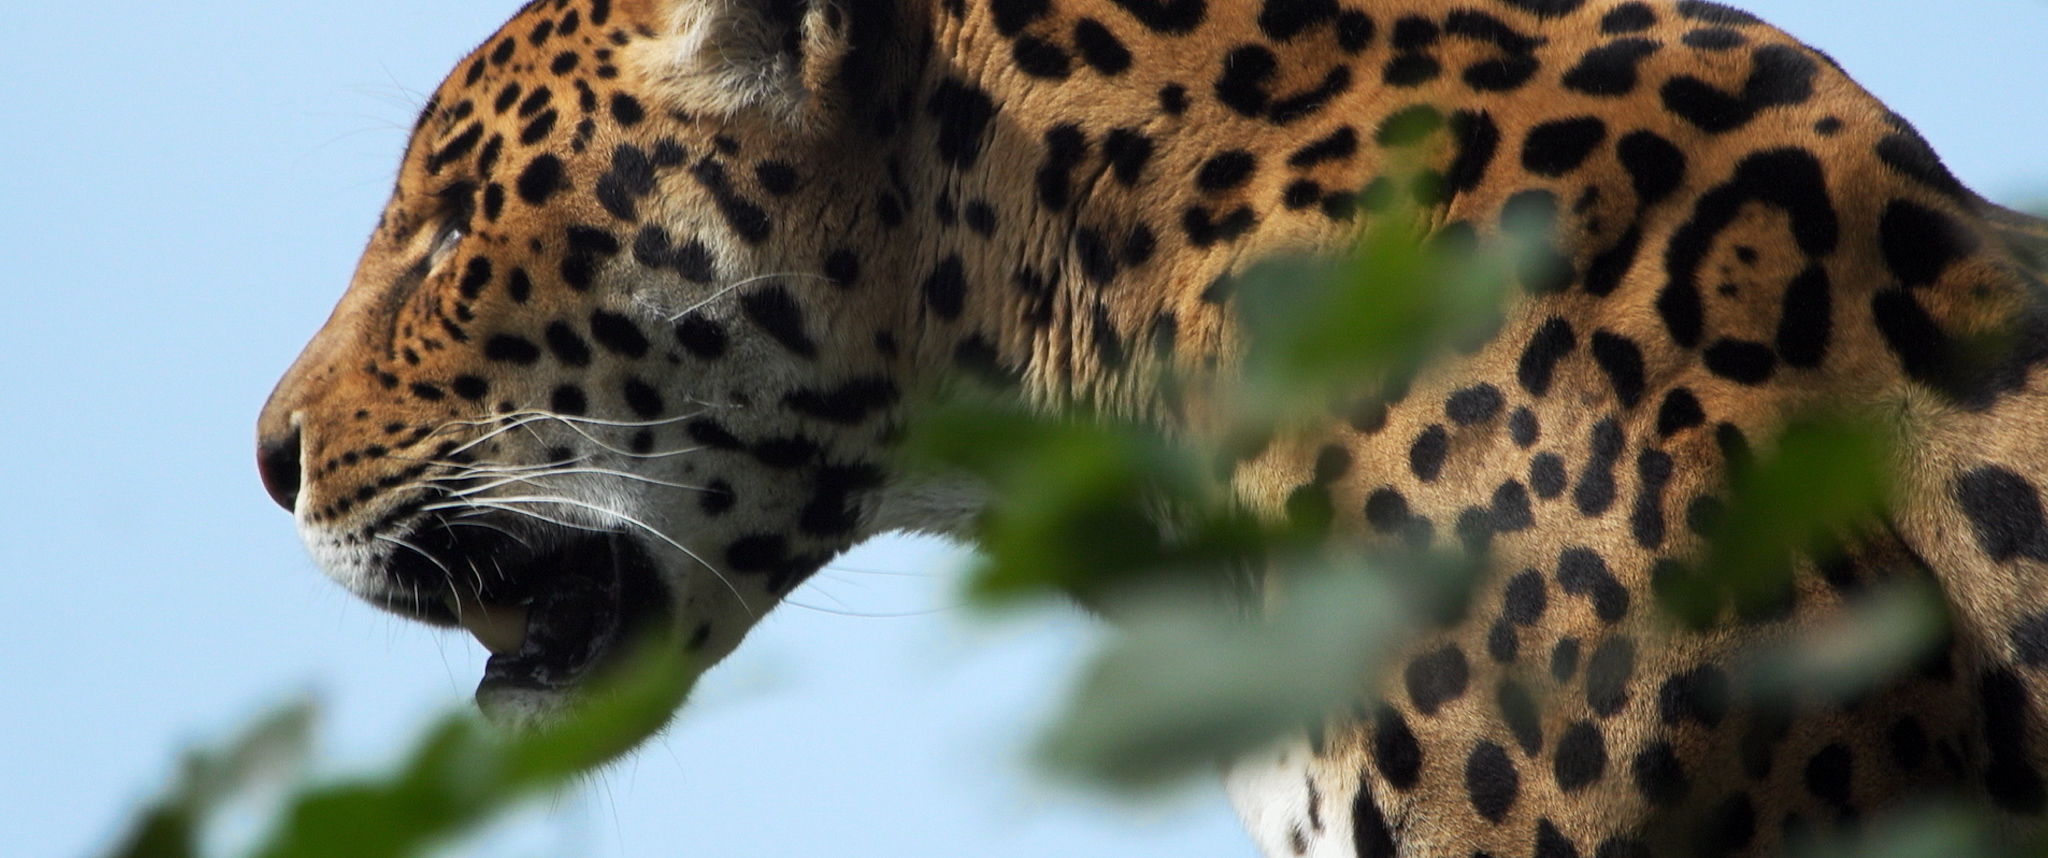 The jaguar is the largest, most powerful cat in the Americas. Jaguars used to be found as far north as the Southwest of the US, but hunting and habitat loss have shrunken their populations extensively. The jaguars in Sonora, Mexico are now the last hope for them returning to their historic northern range.